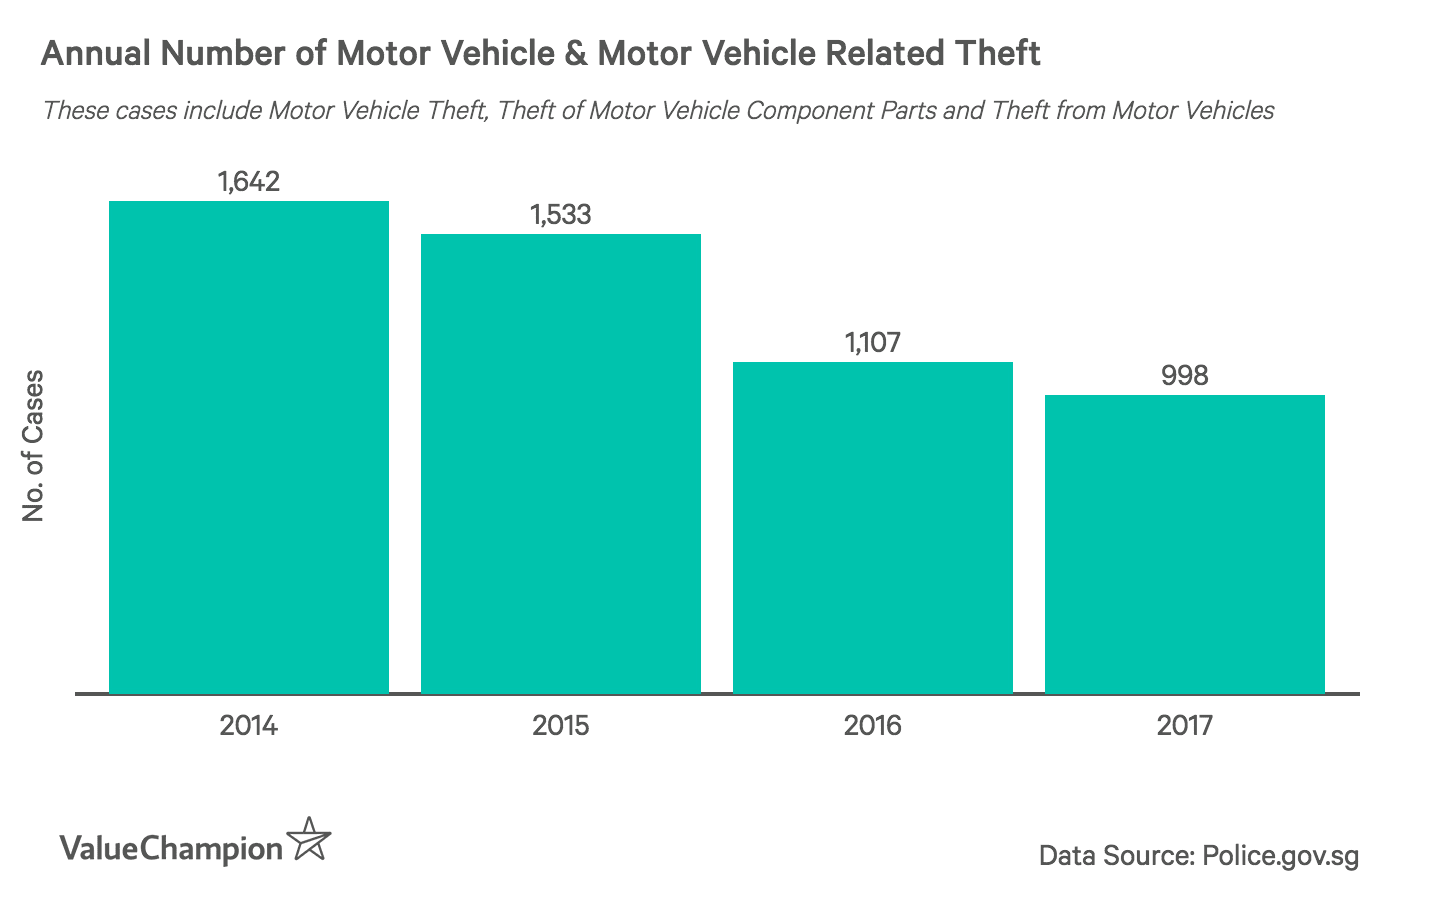 This graph shows the annual cases of motor vehicle and related thefts between 2014 and 2017